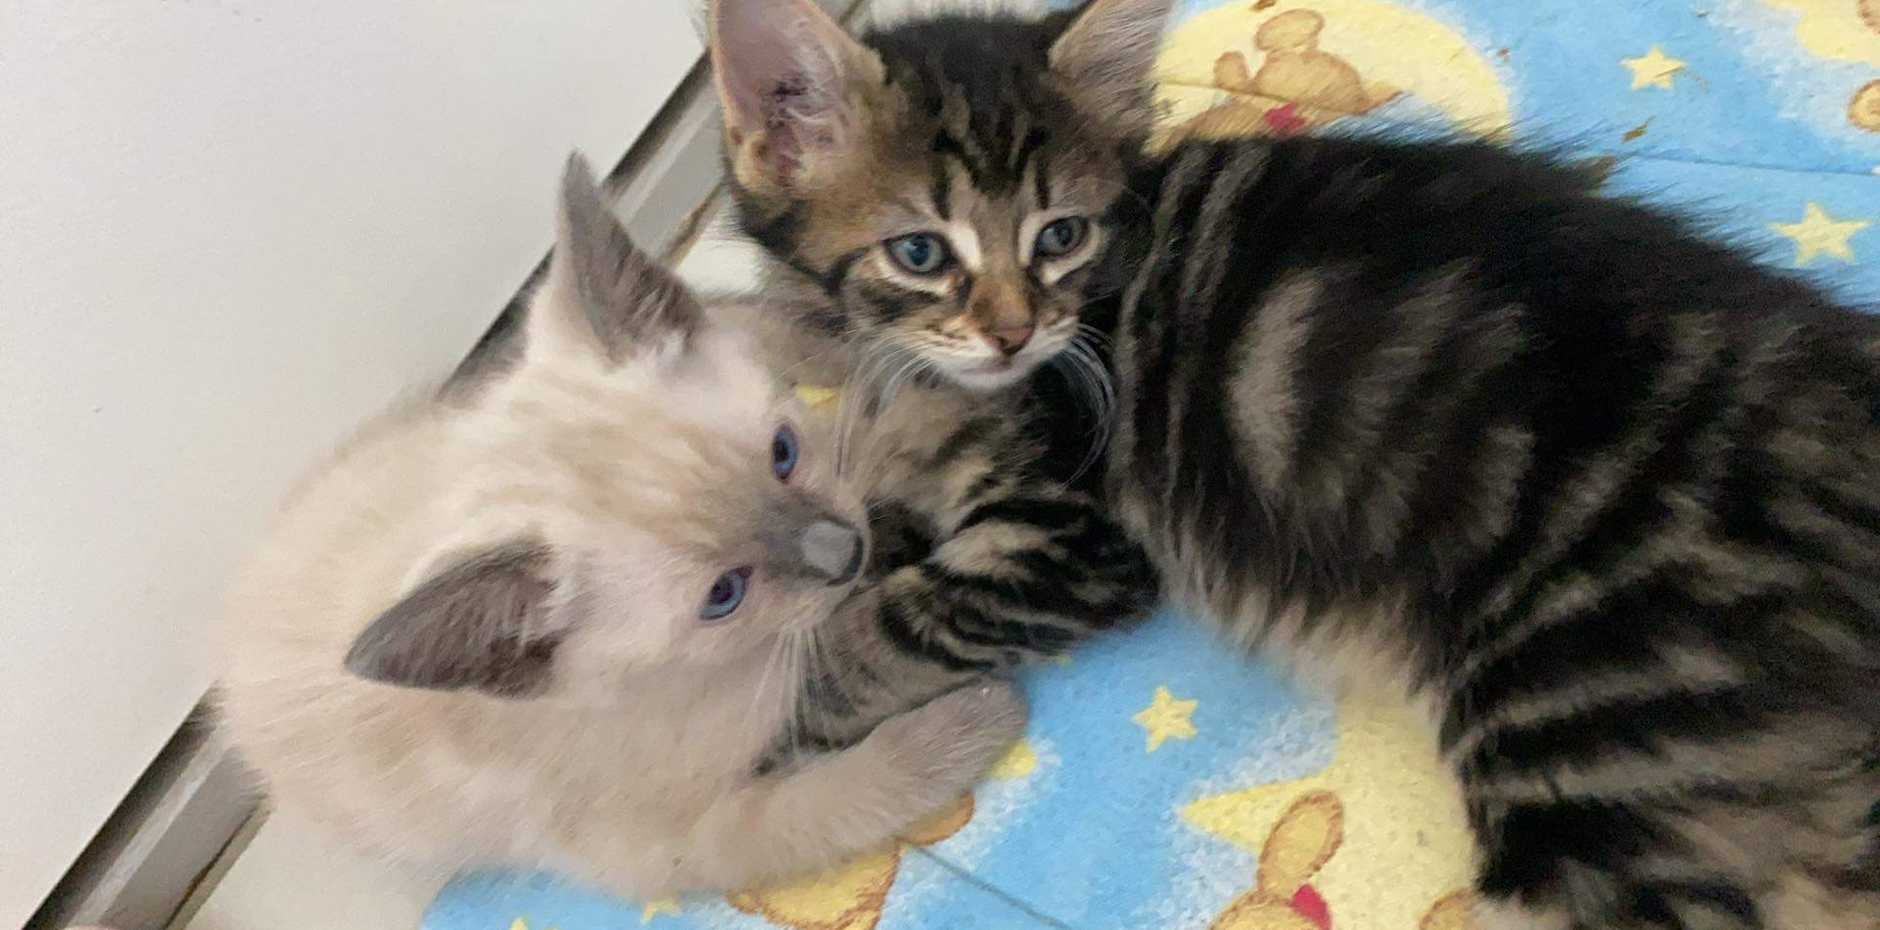 These kittens have been rescued after being thrown from a moving car.